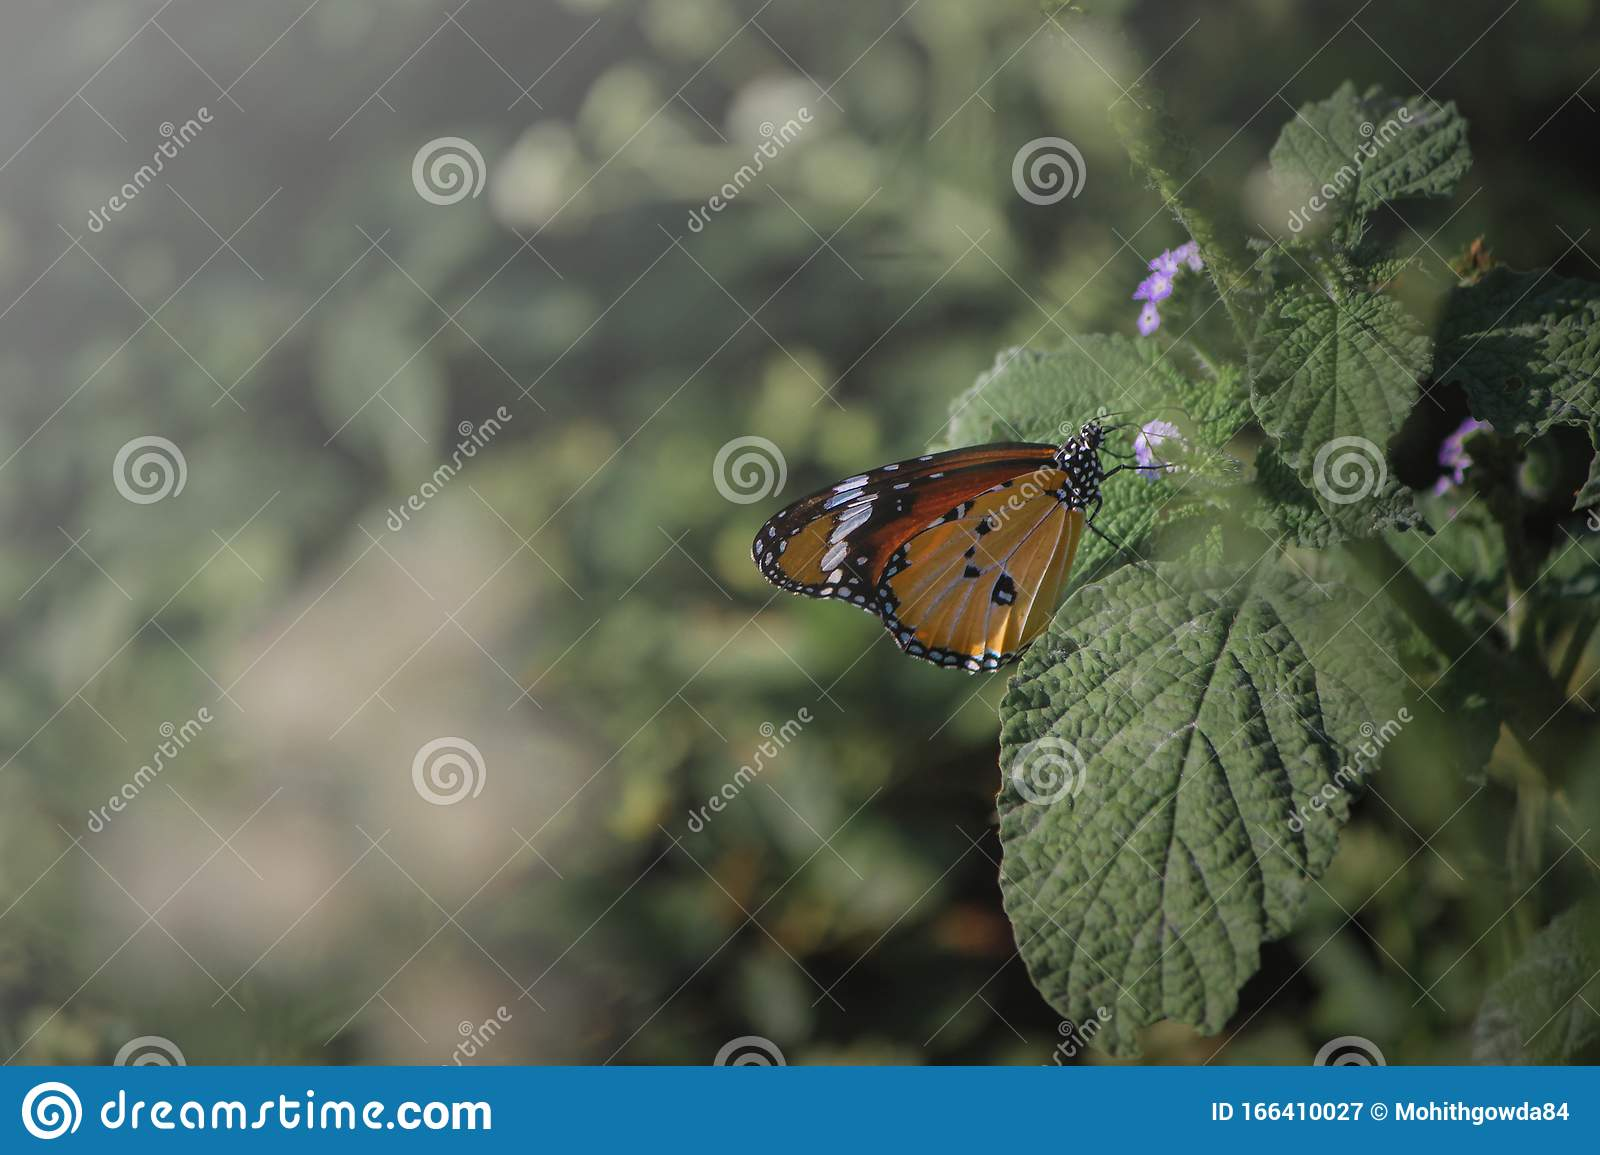 Orange Butterfly With Black And White Spots Sitting On Green Leaf Stock Image Image Of Color Leaf 166410027